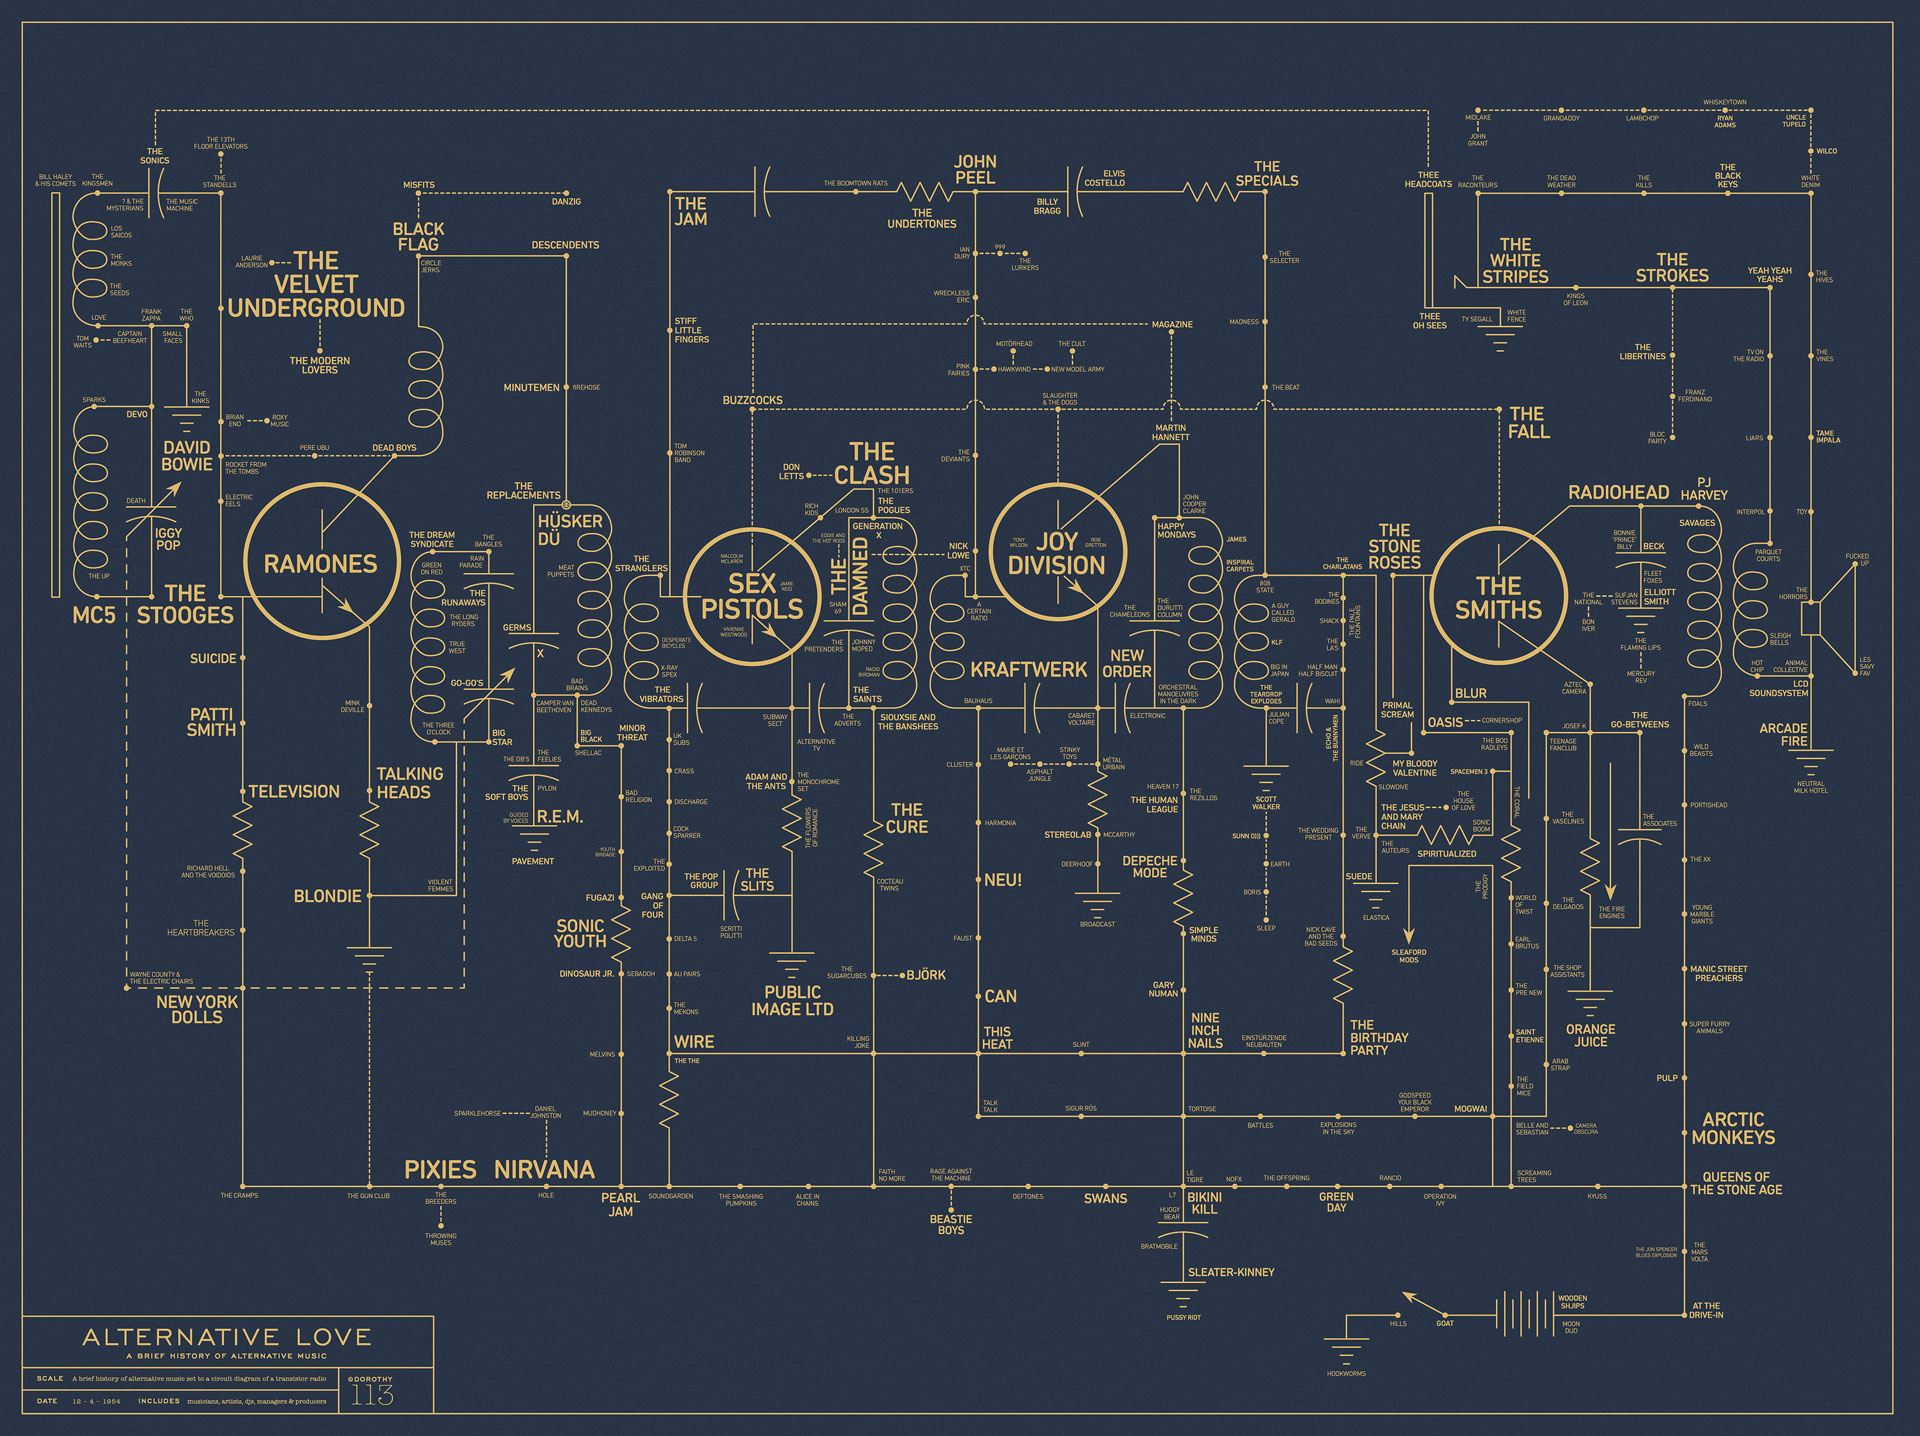 A Brief History of Alt Music Mapped Like an Early Transistor Radio ...